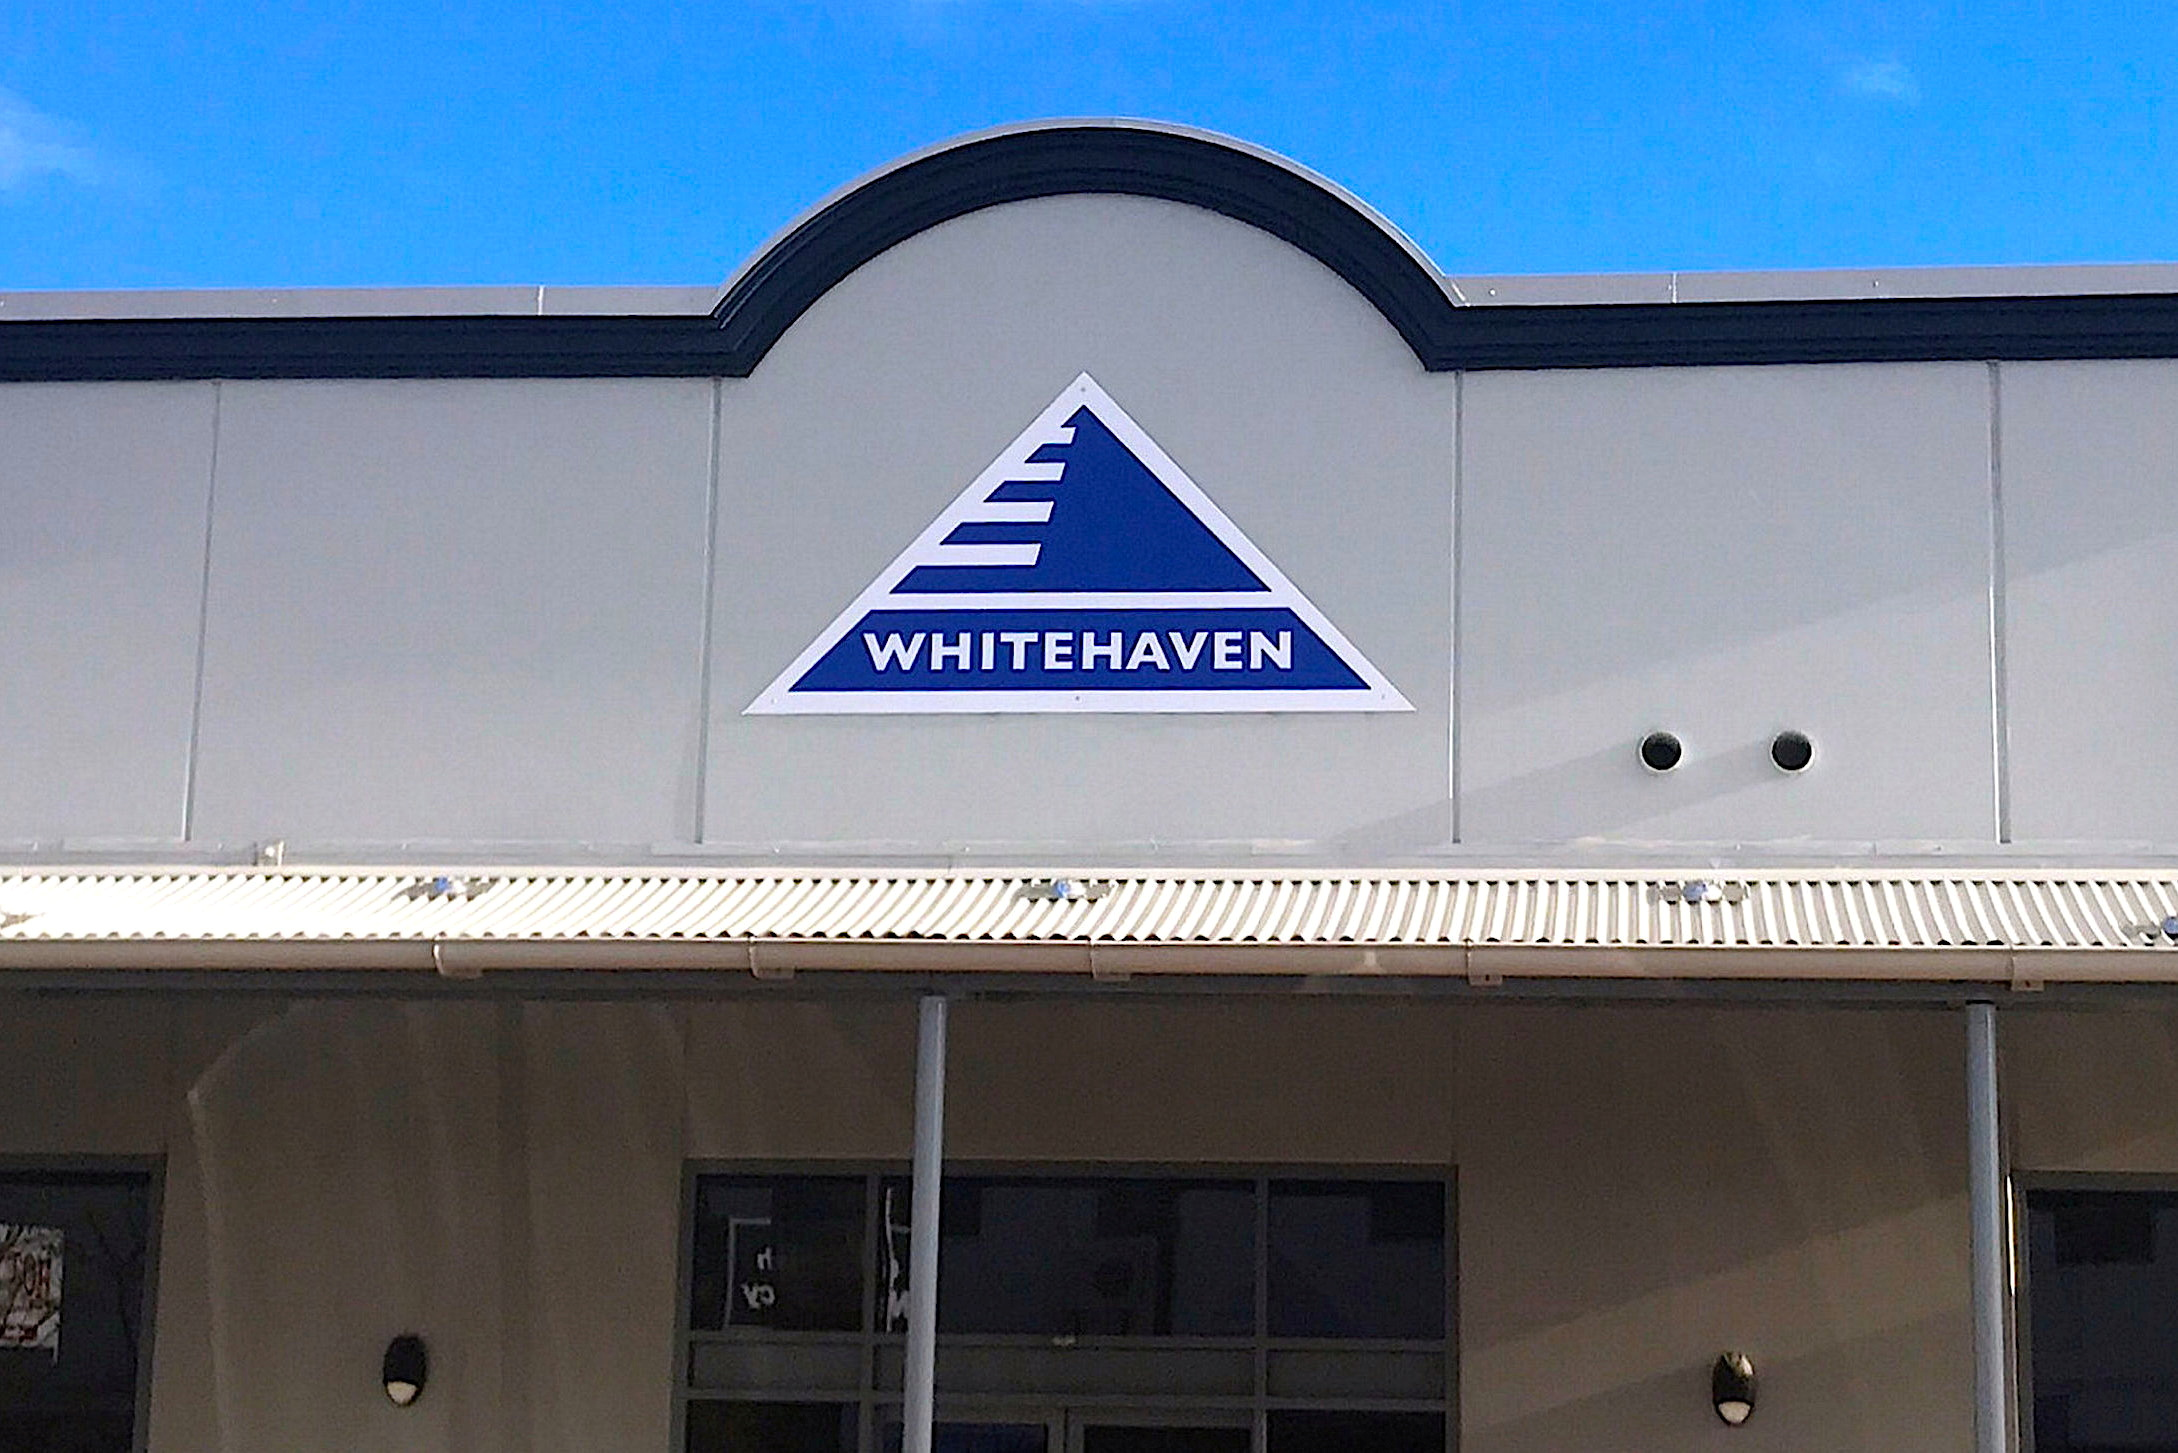 The logo of Australia's biggest independent coal miner Whitehaven Coal Ltd is displayed on their office building located in the north-western New South Wales town of Gunnedah in Australia, August 15, 2017. Picture taken August 15, 2017.    REUTERS/David Gray/File Photo